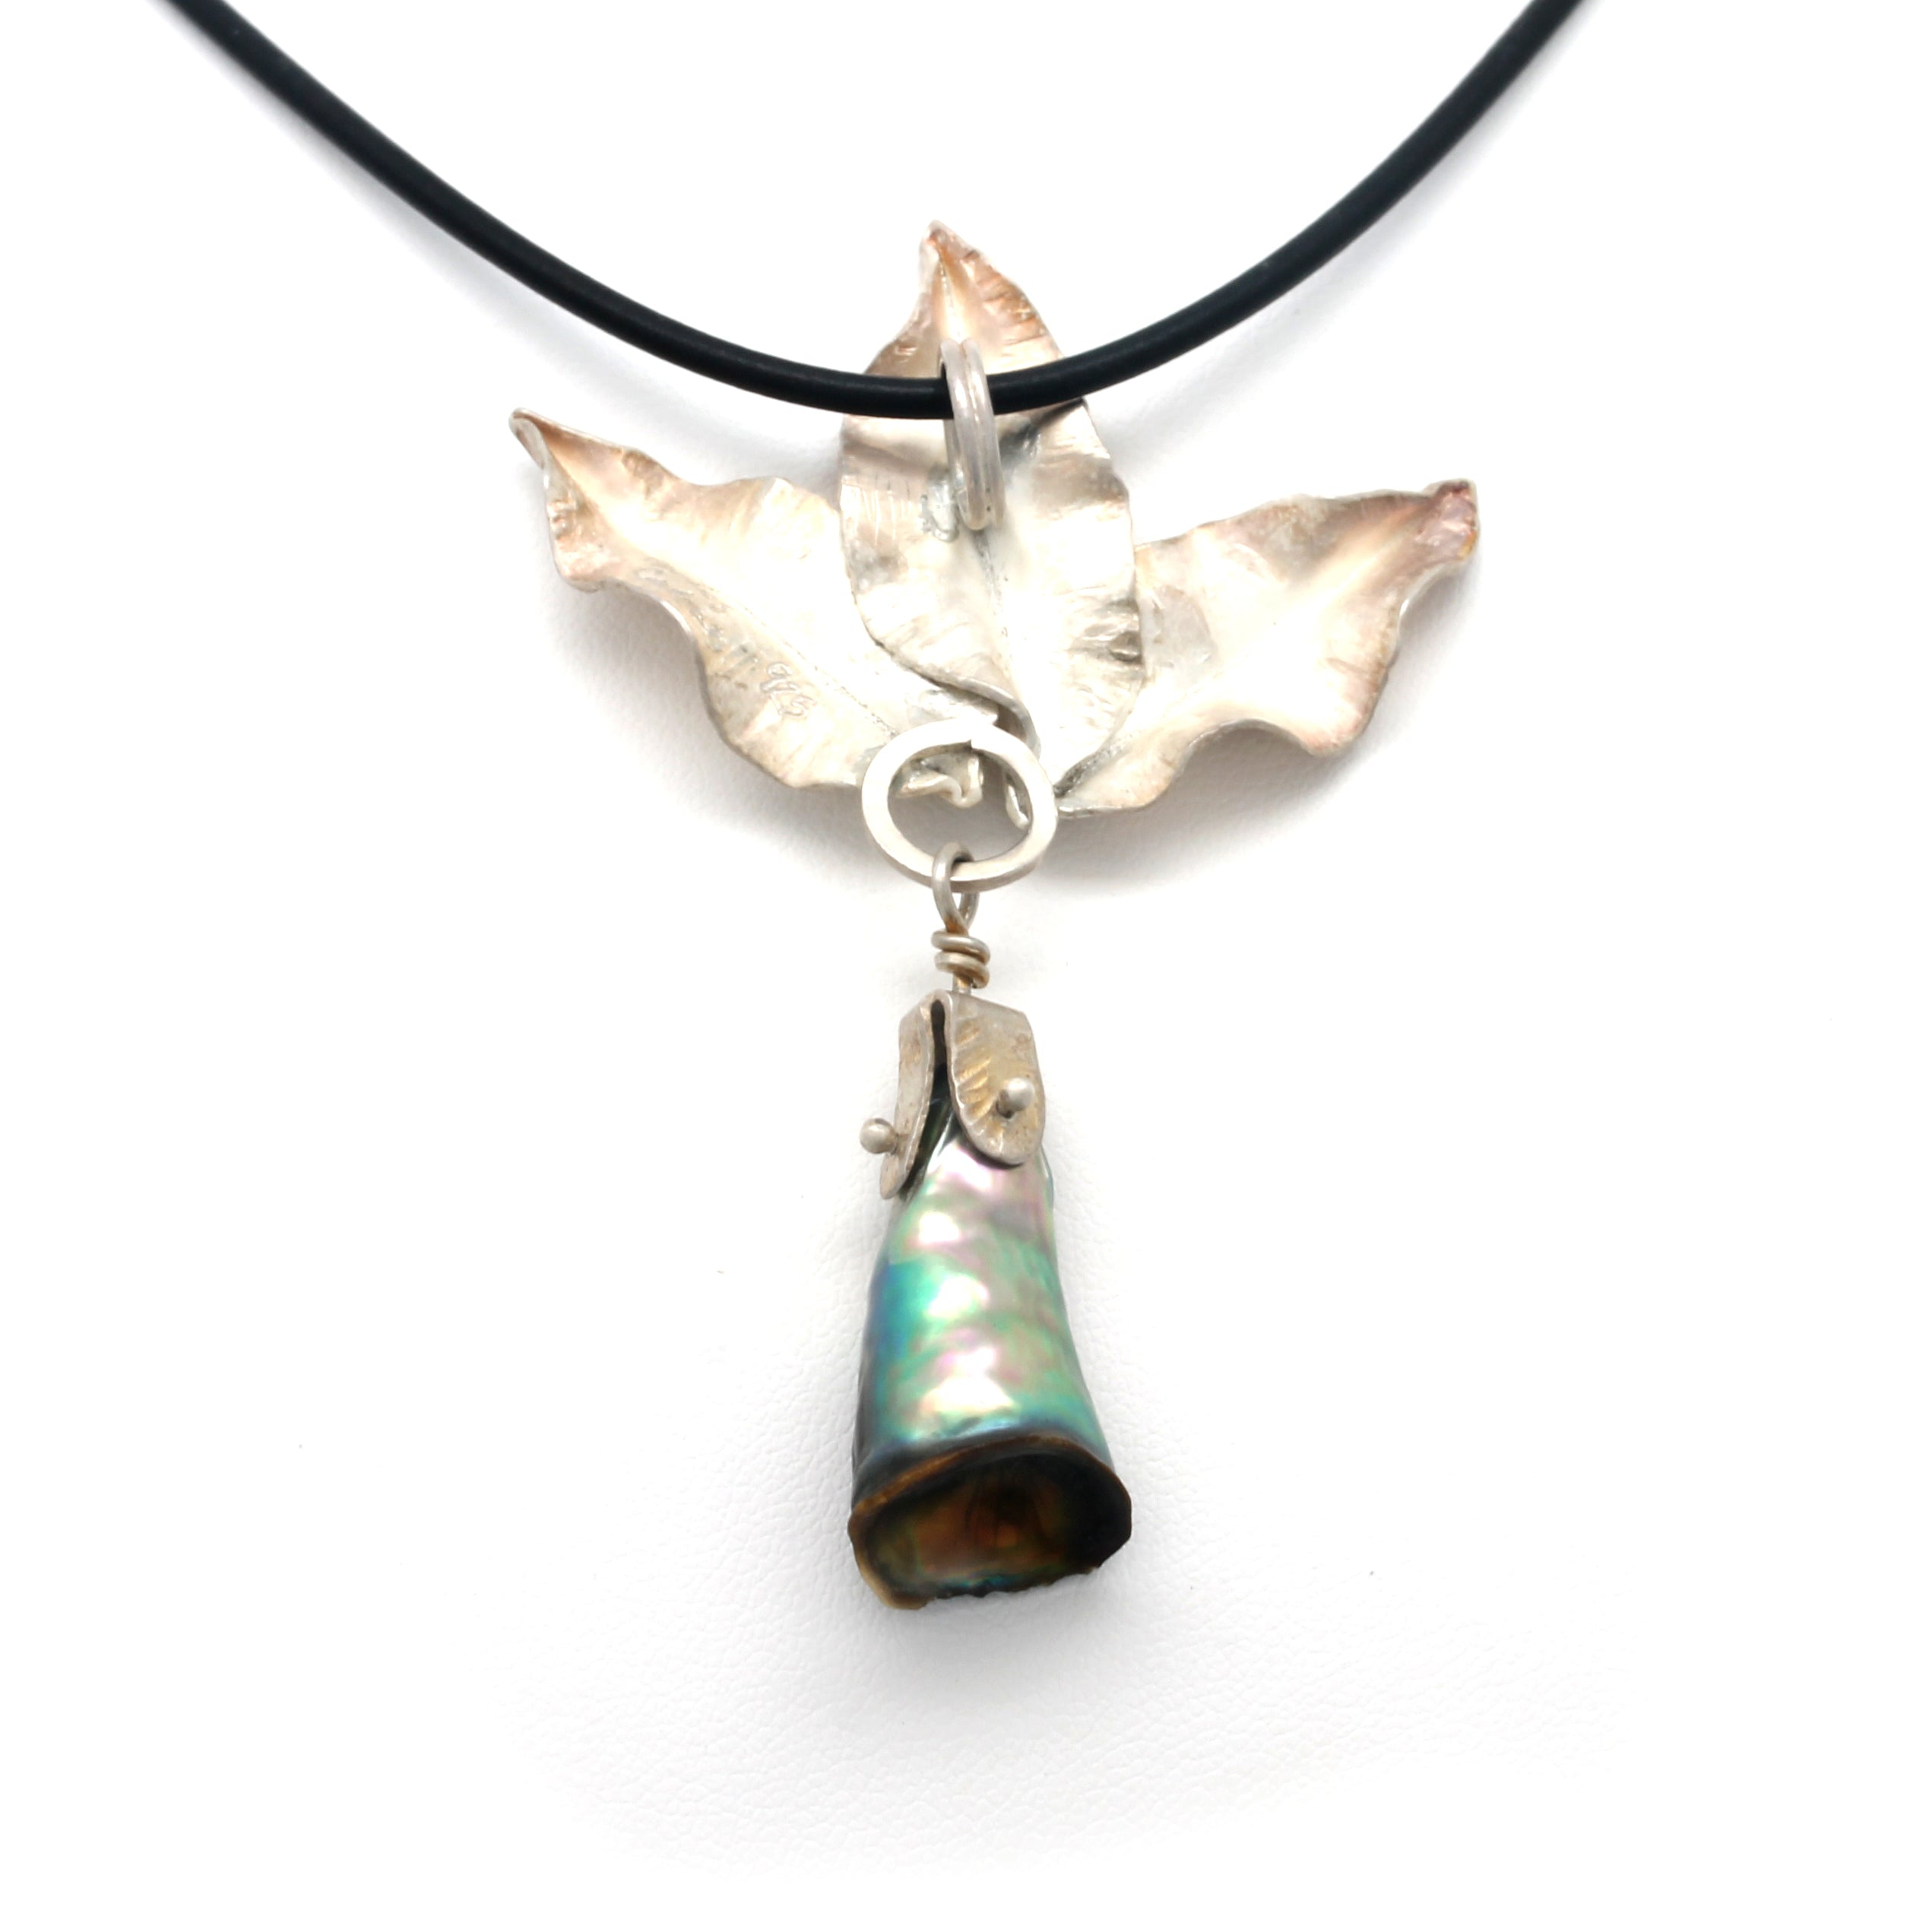 Natural Abalone Pearl on Silver Pendant by Carlos Cabral